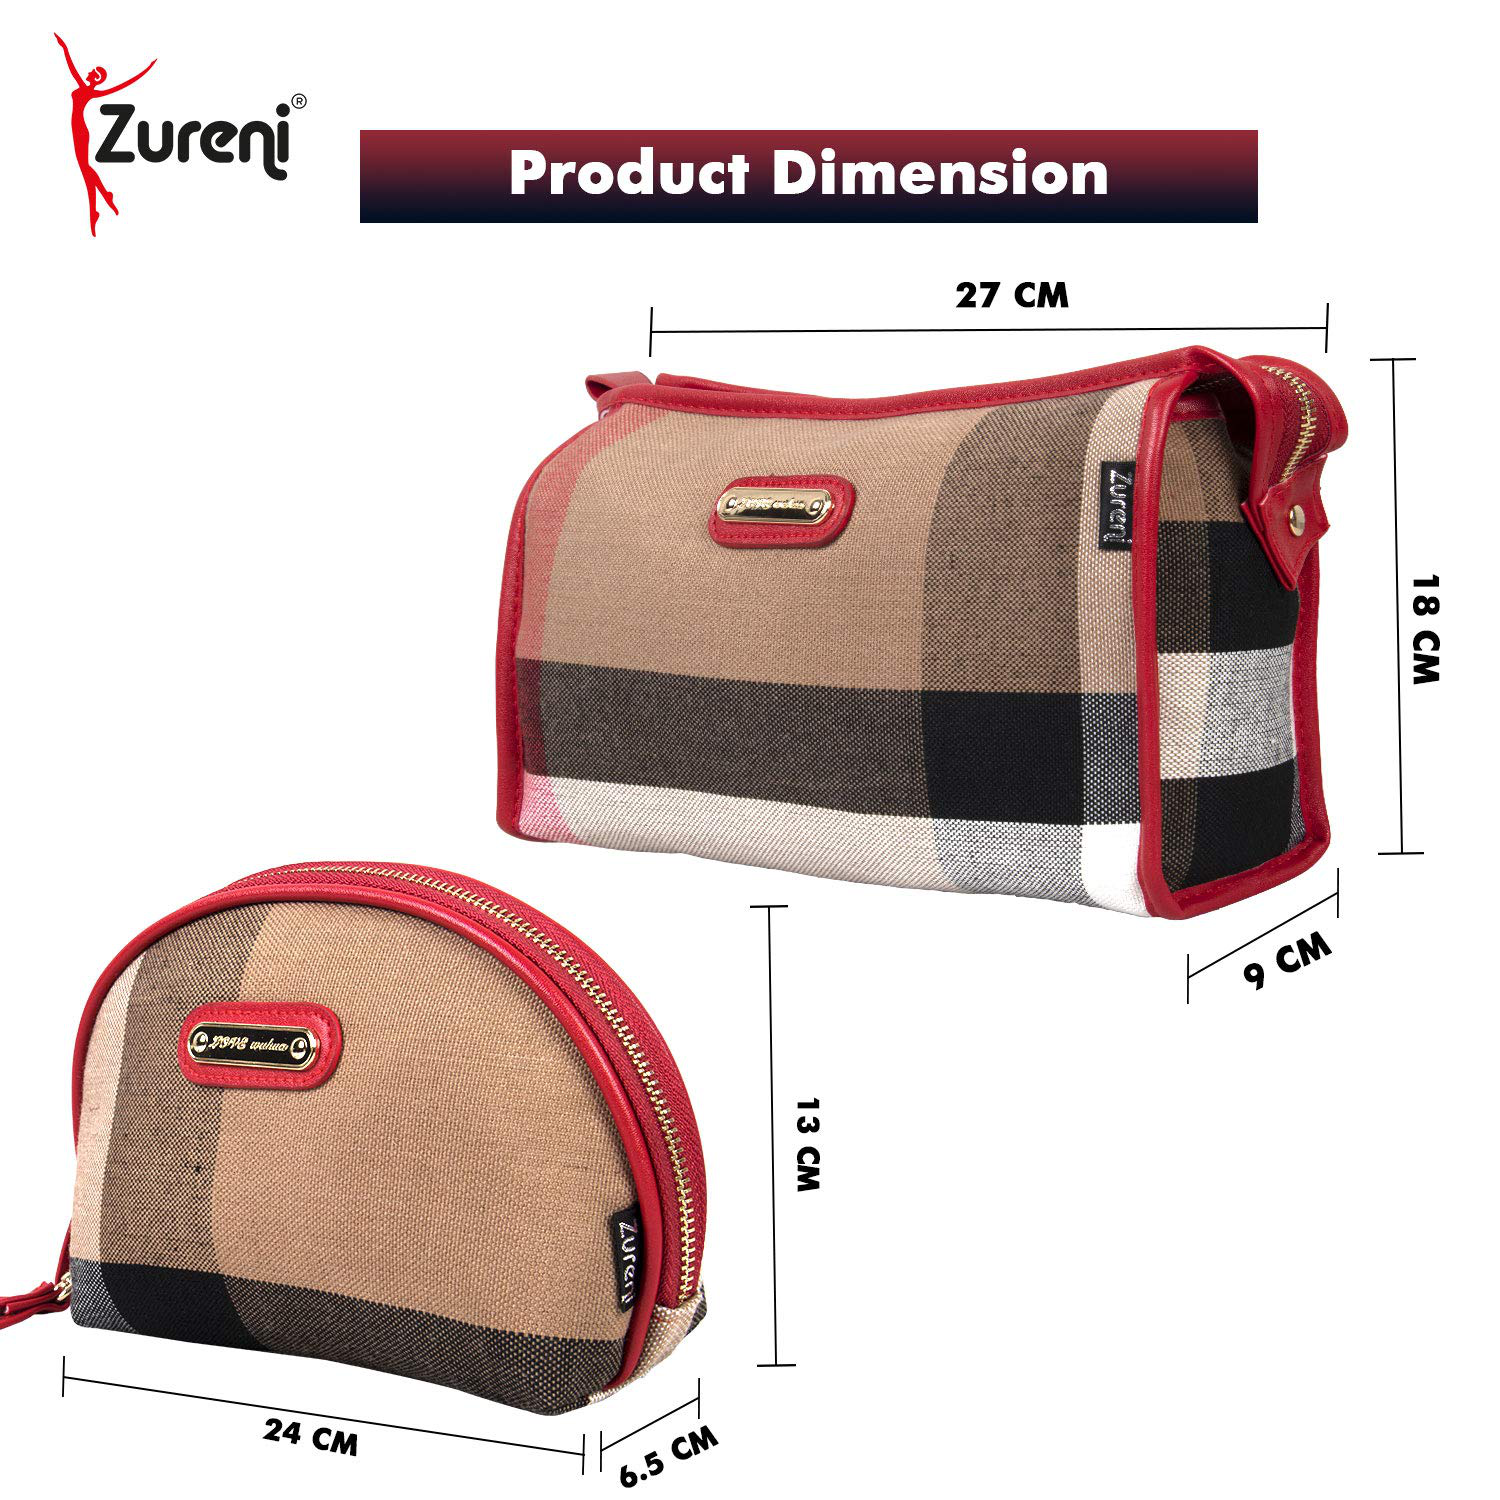 Zureni ZU161-477 Set of 2 Cross Striped Canvas Zippered Cosmetic Toiletry Bag Wristlet Wallet Travel Clutch Purses with Interior Pockets for Women and Girls (Multicolor)